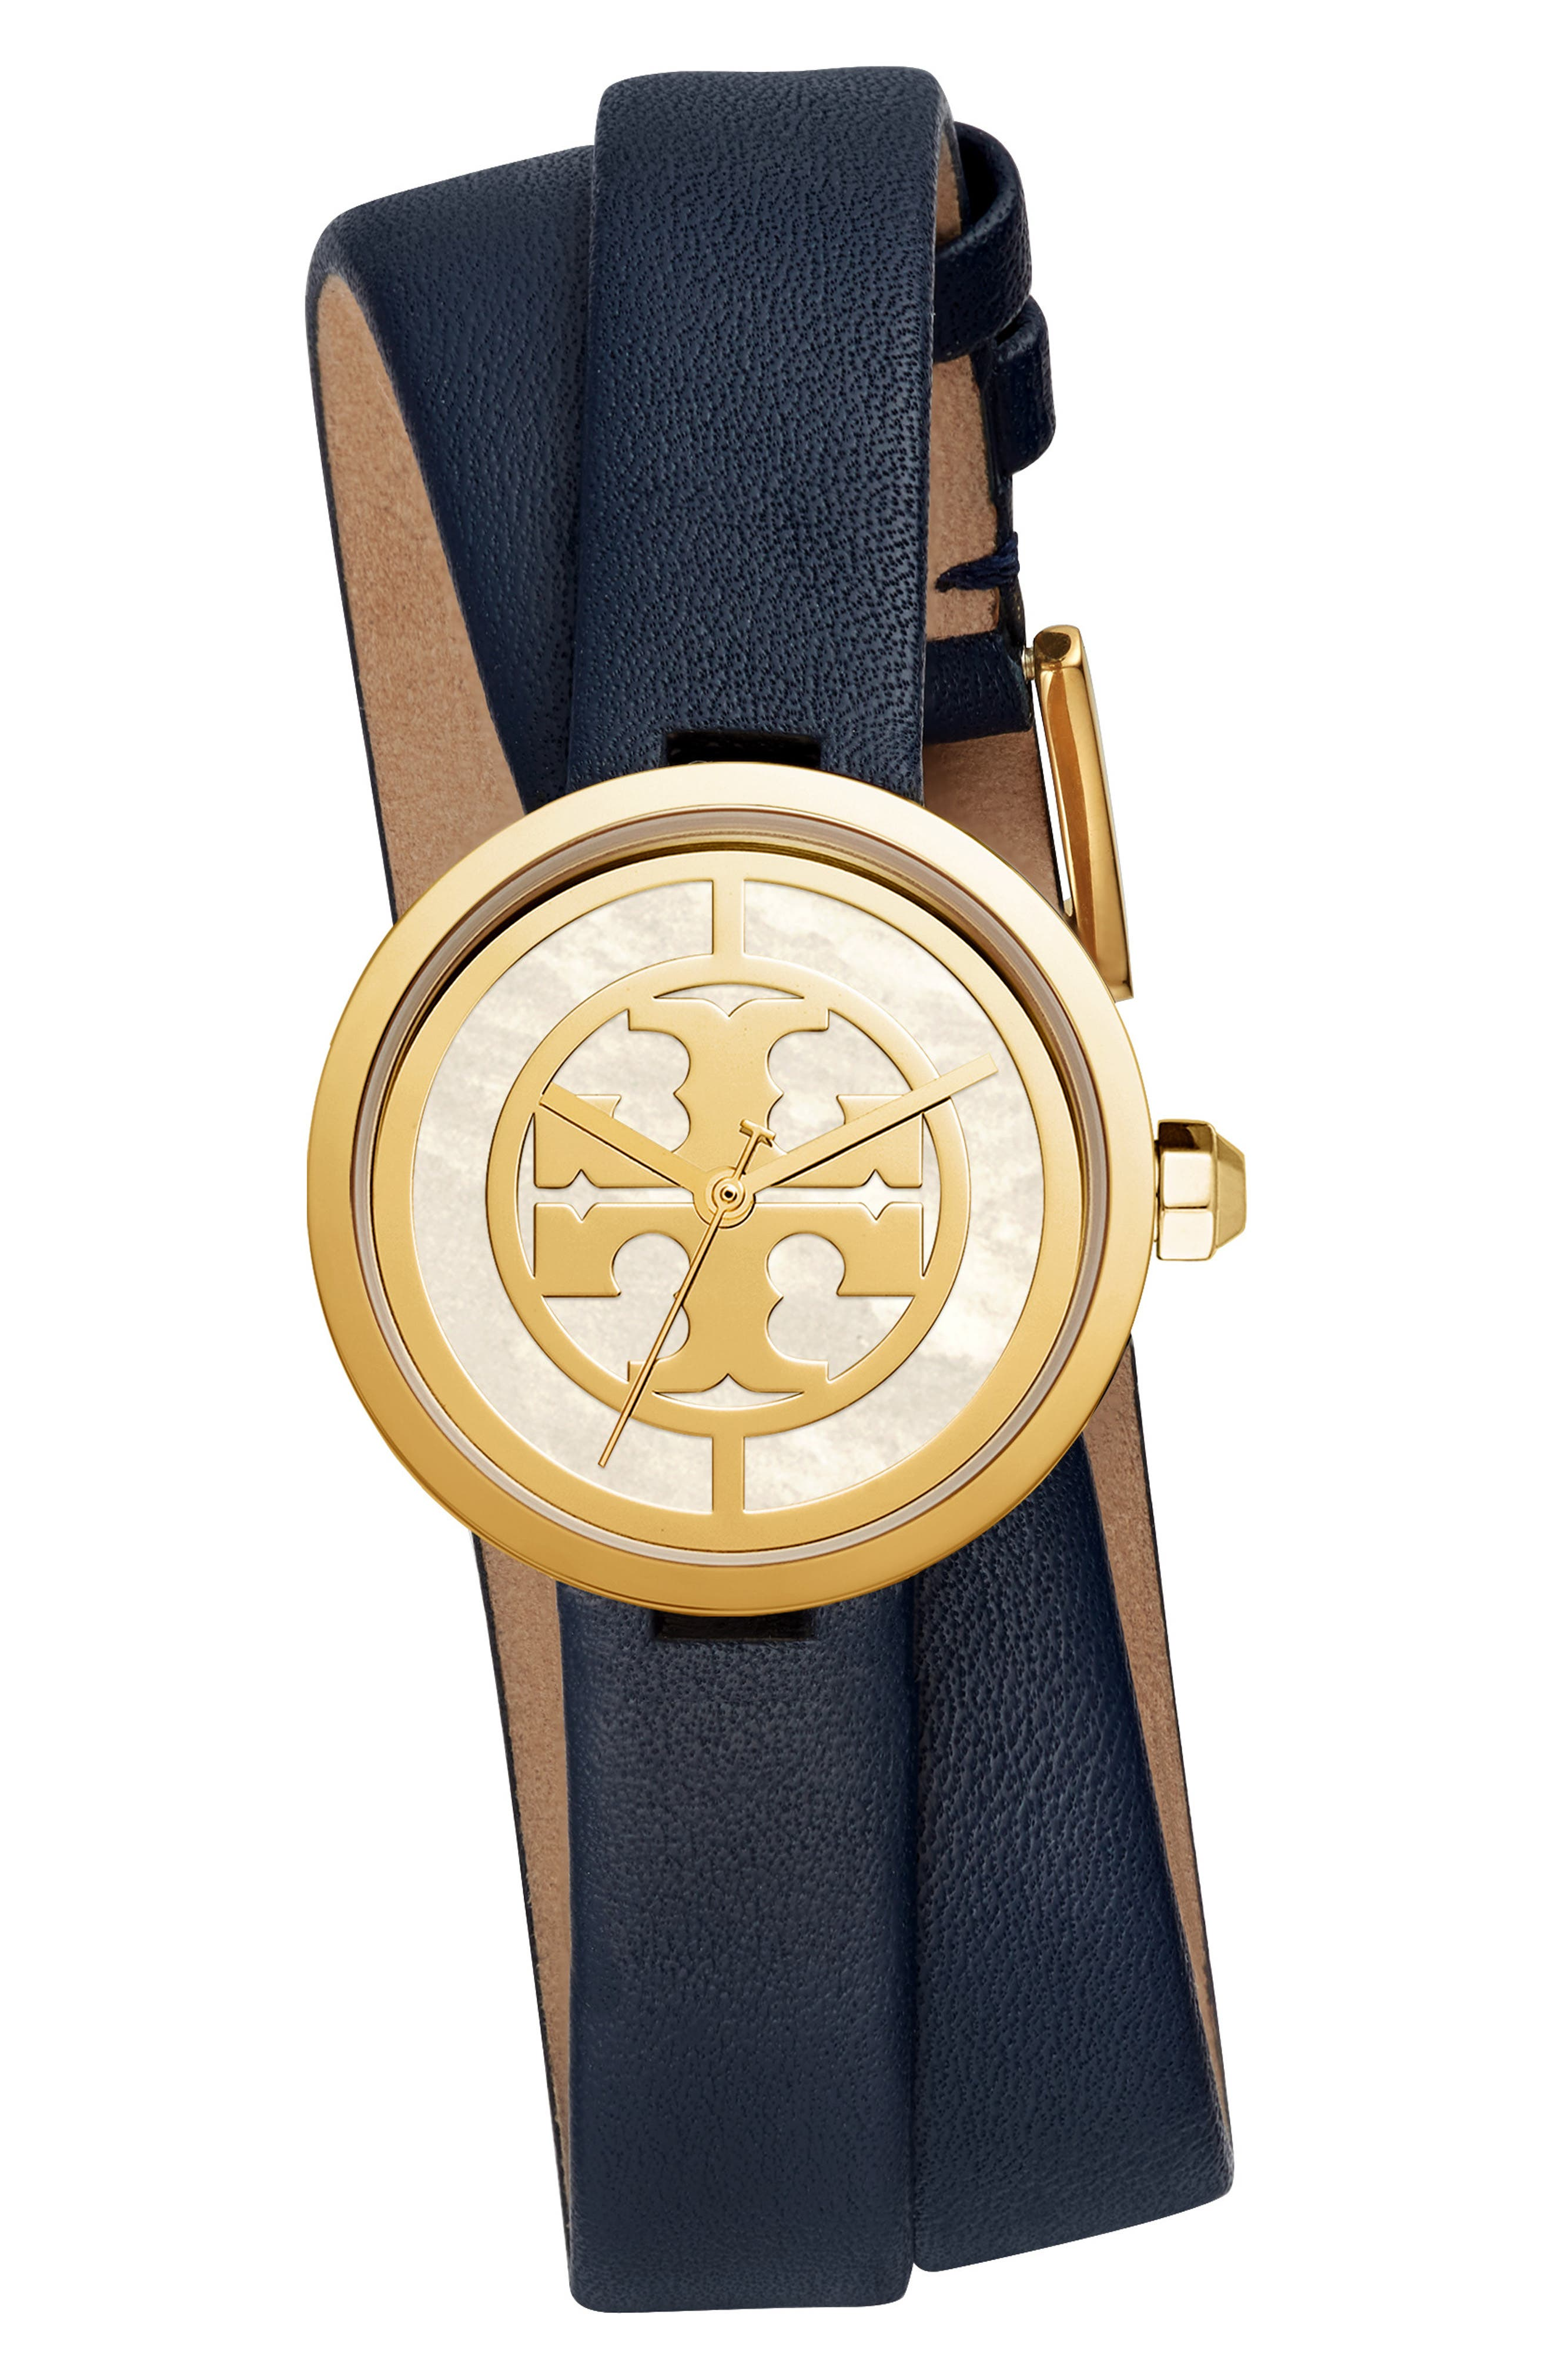 TORY BURCH Reva Double Wrap Leather Strap Watch, 29mm, Main, color, BLUE/ MOP/ GOLD